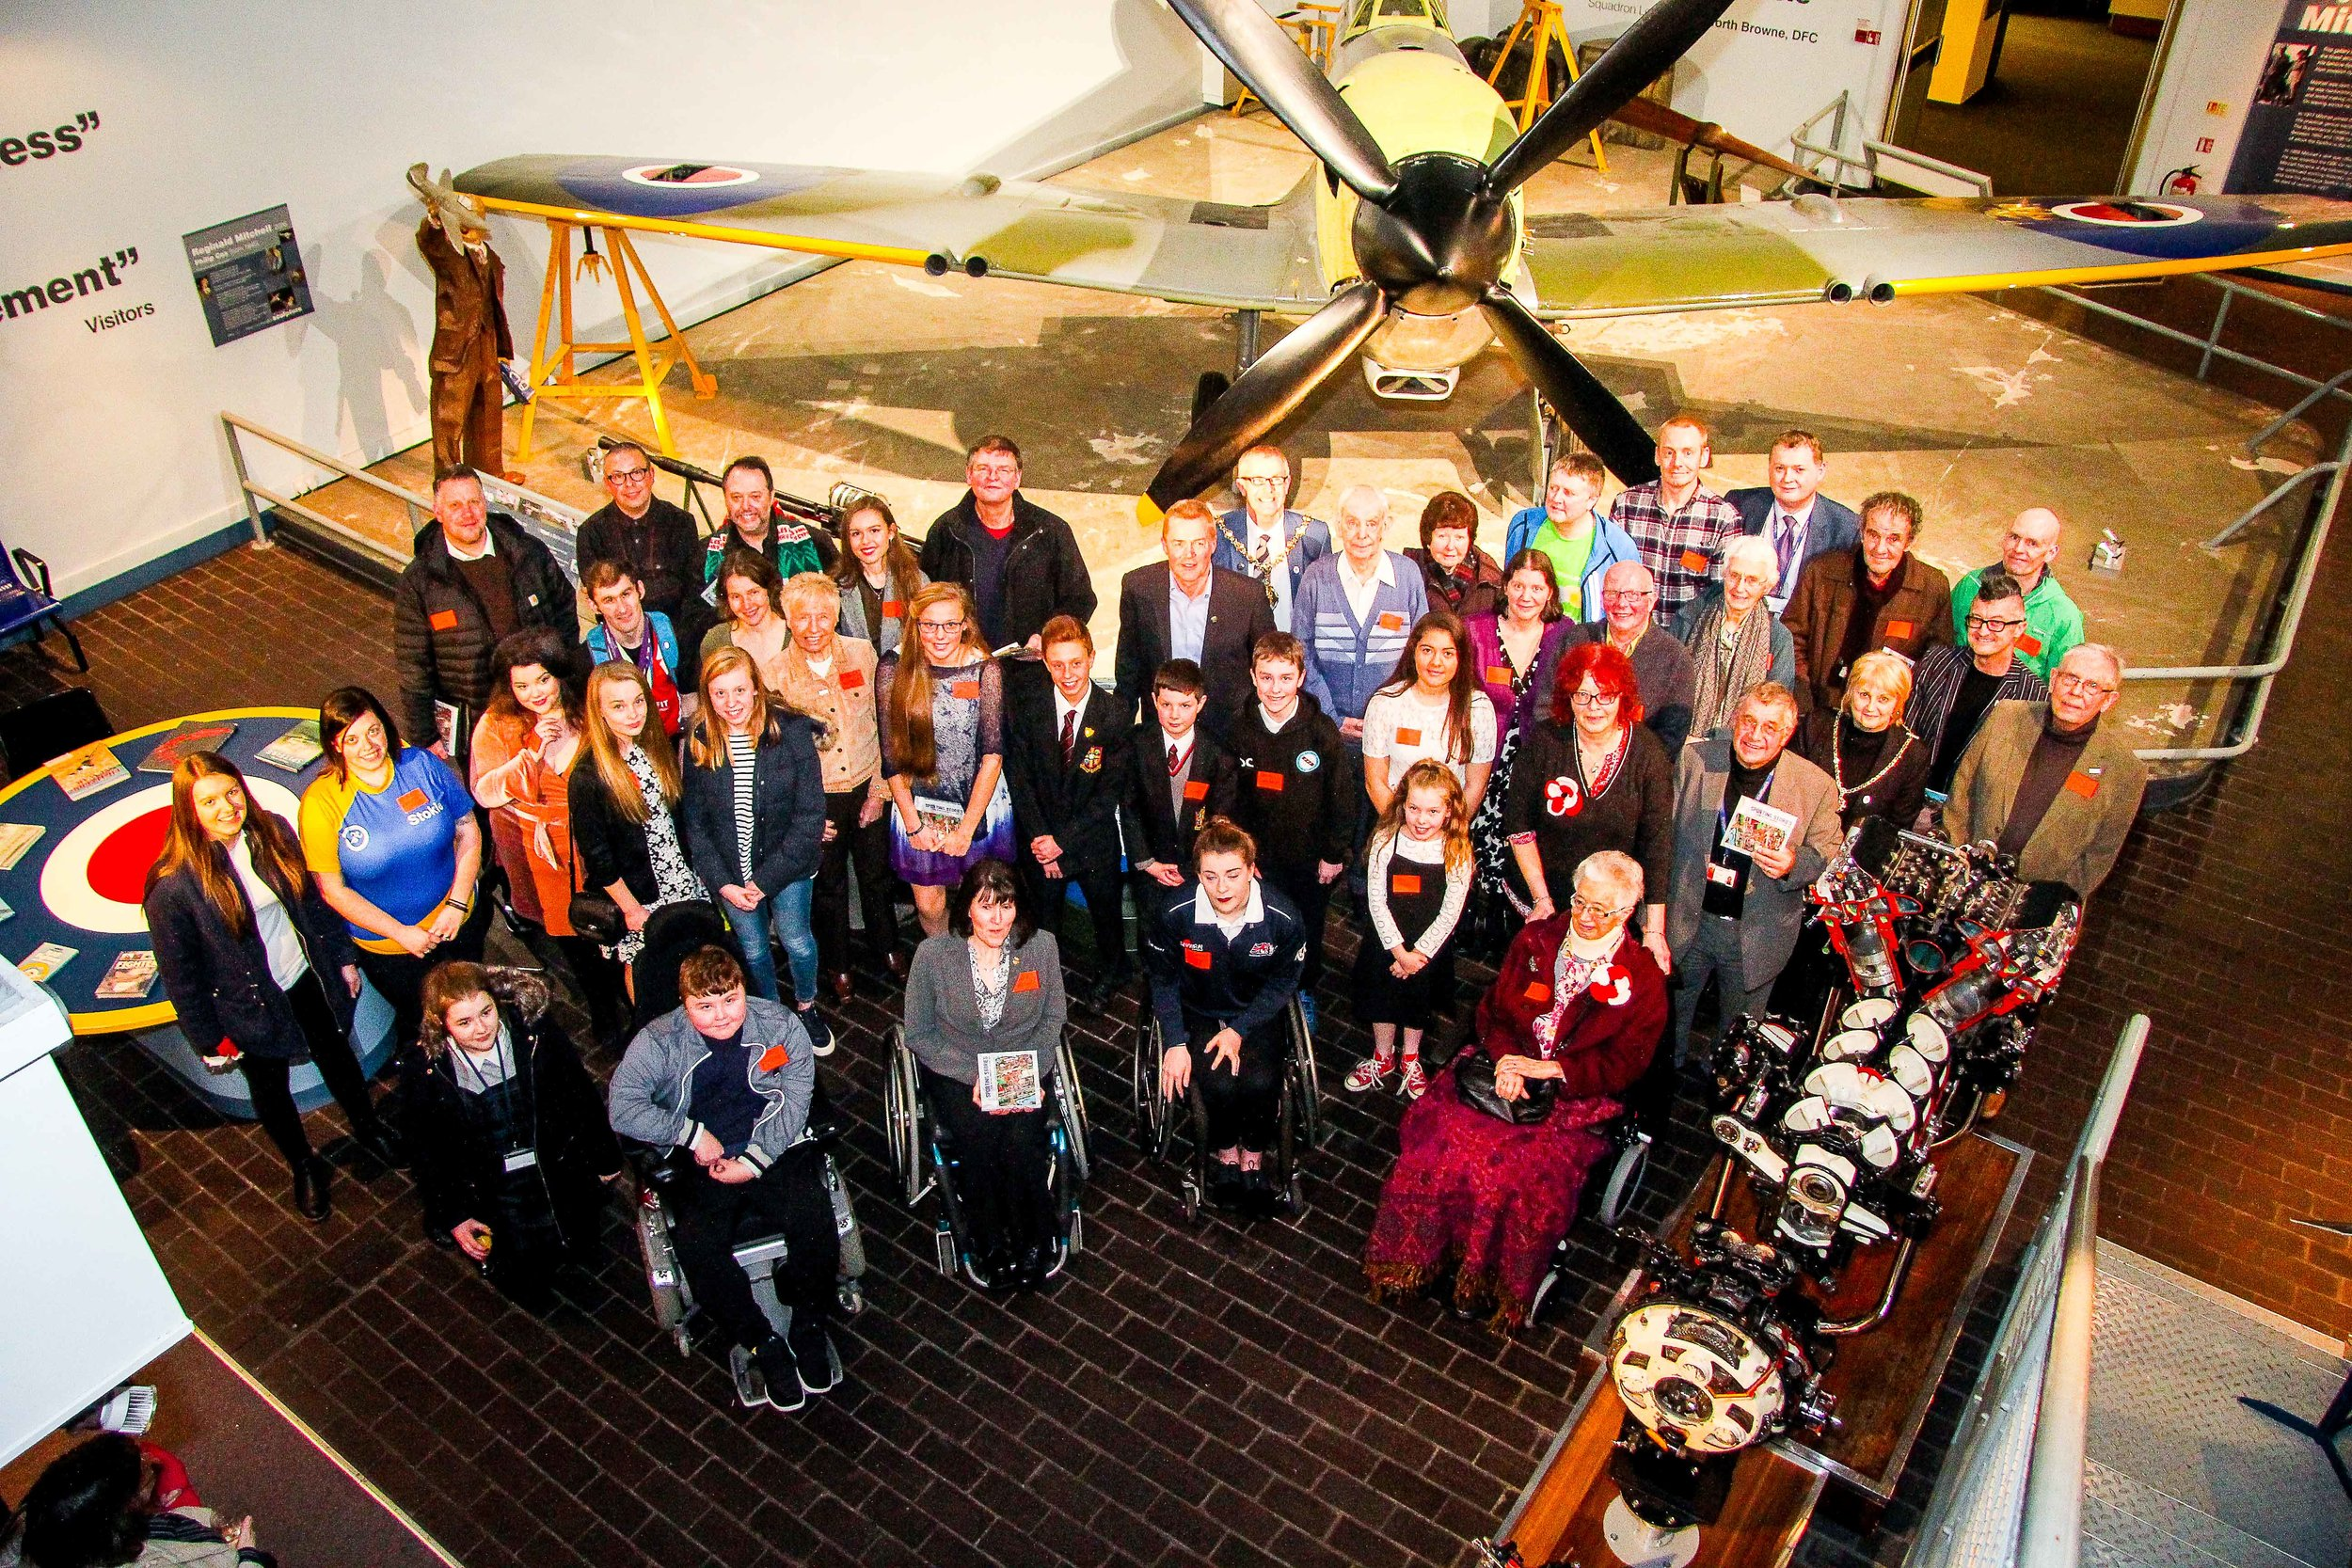 An agglomeration of authors in the Spitfire Gallery! Roughly half of the contributors to Sporting Stories, including (back row second from left) Gaz Williams, who created the beautiful cover artwork